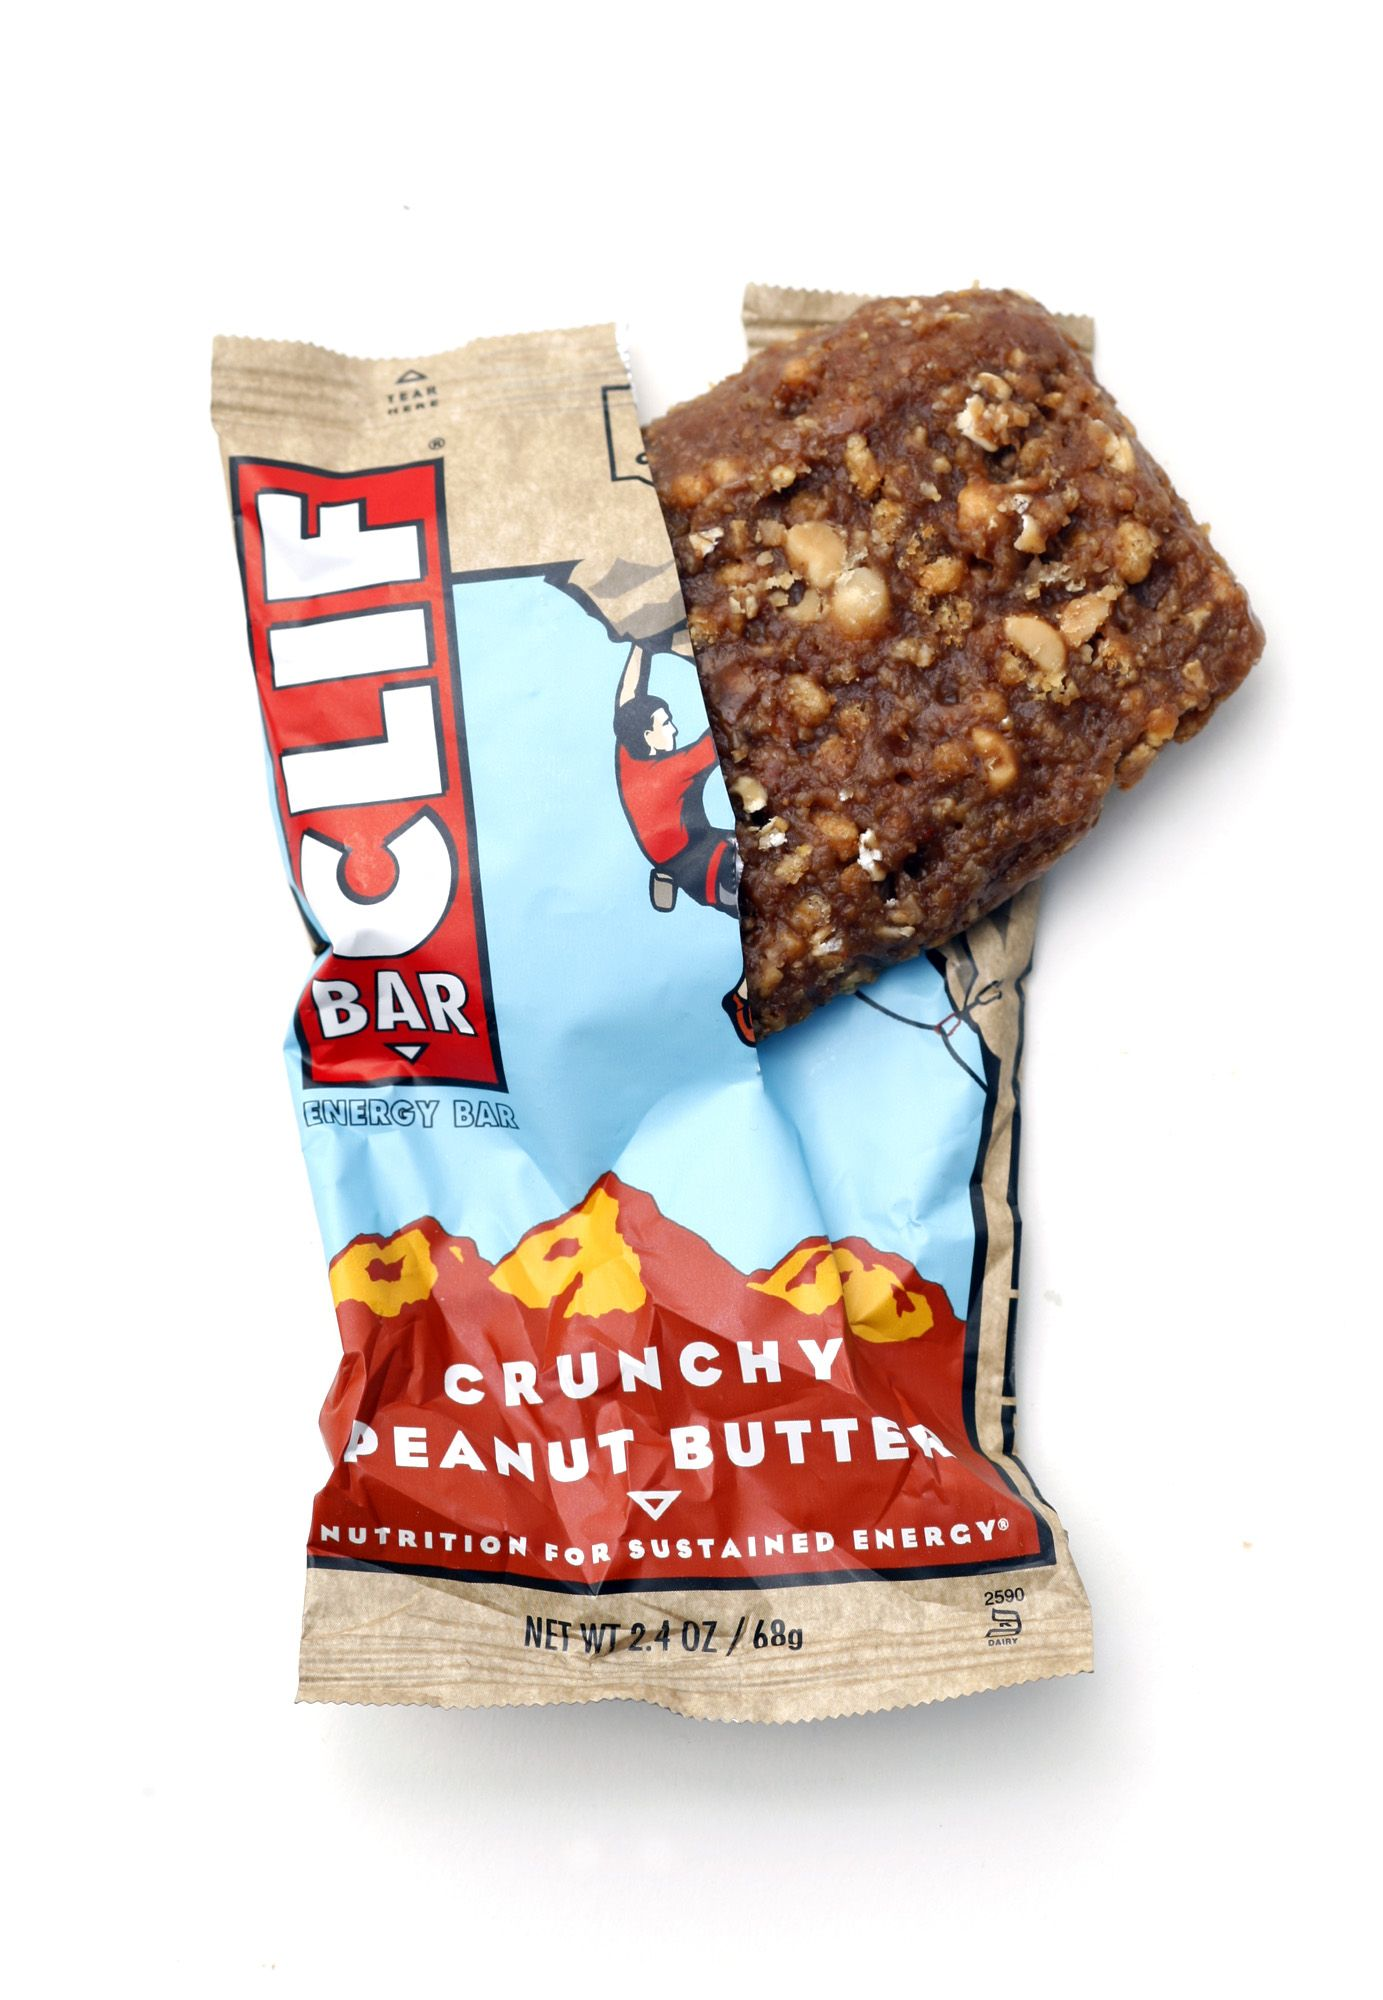 Are Clif bars healthy? Here's everything you need to know